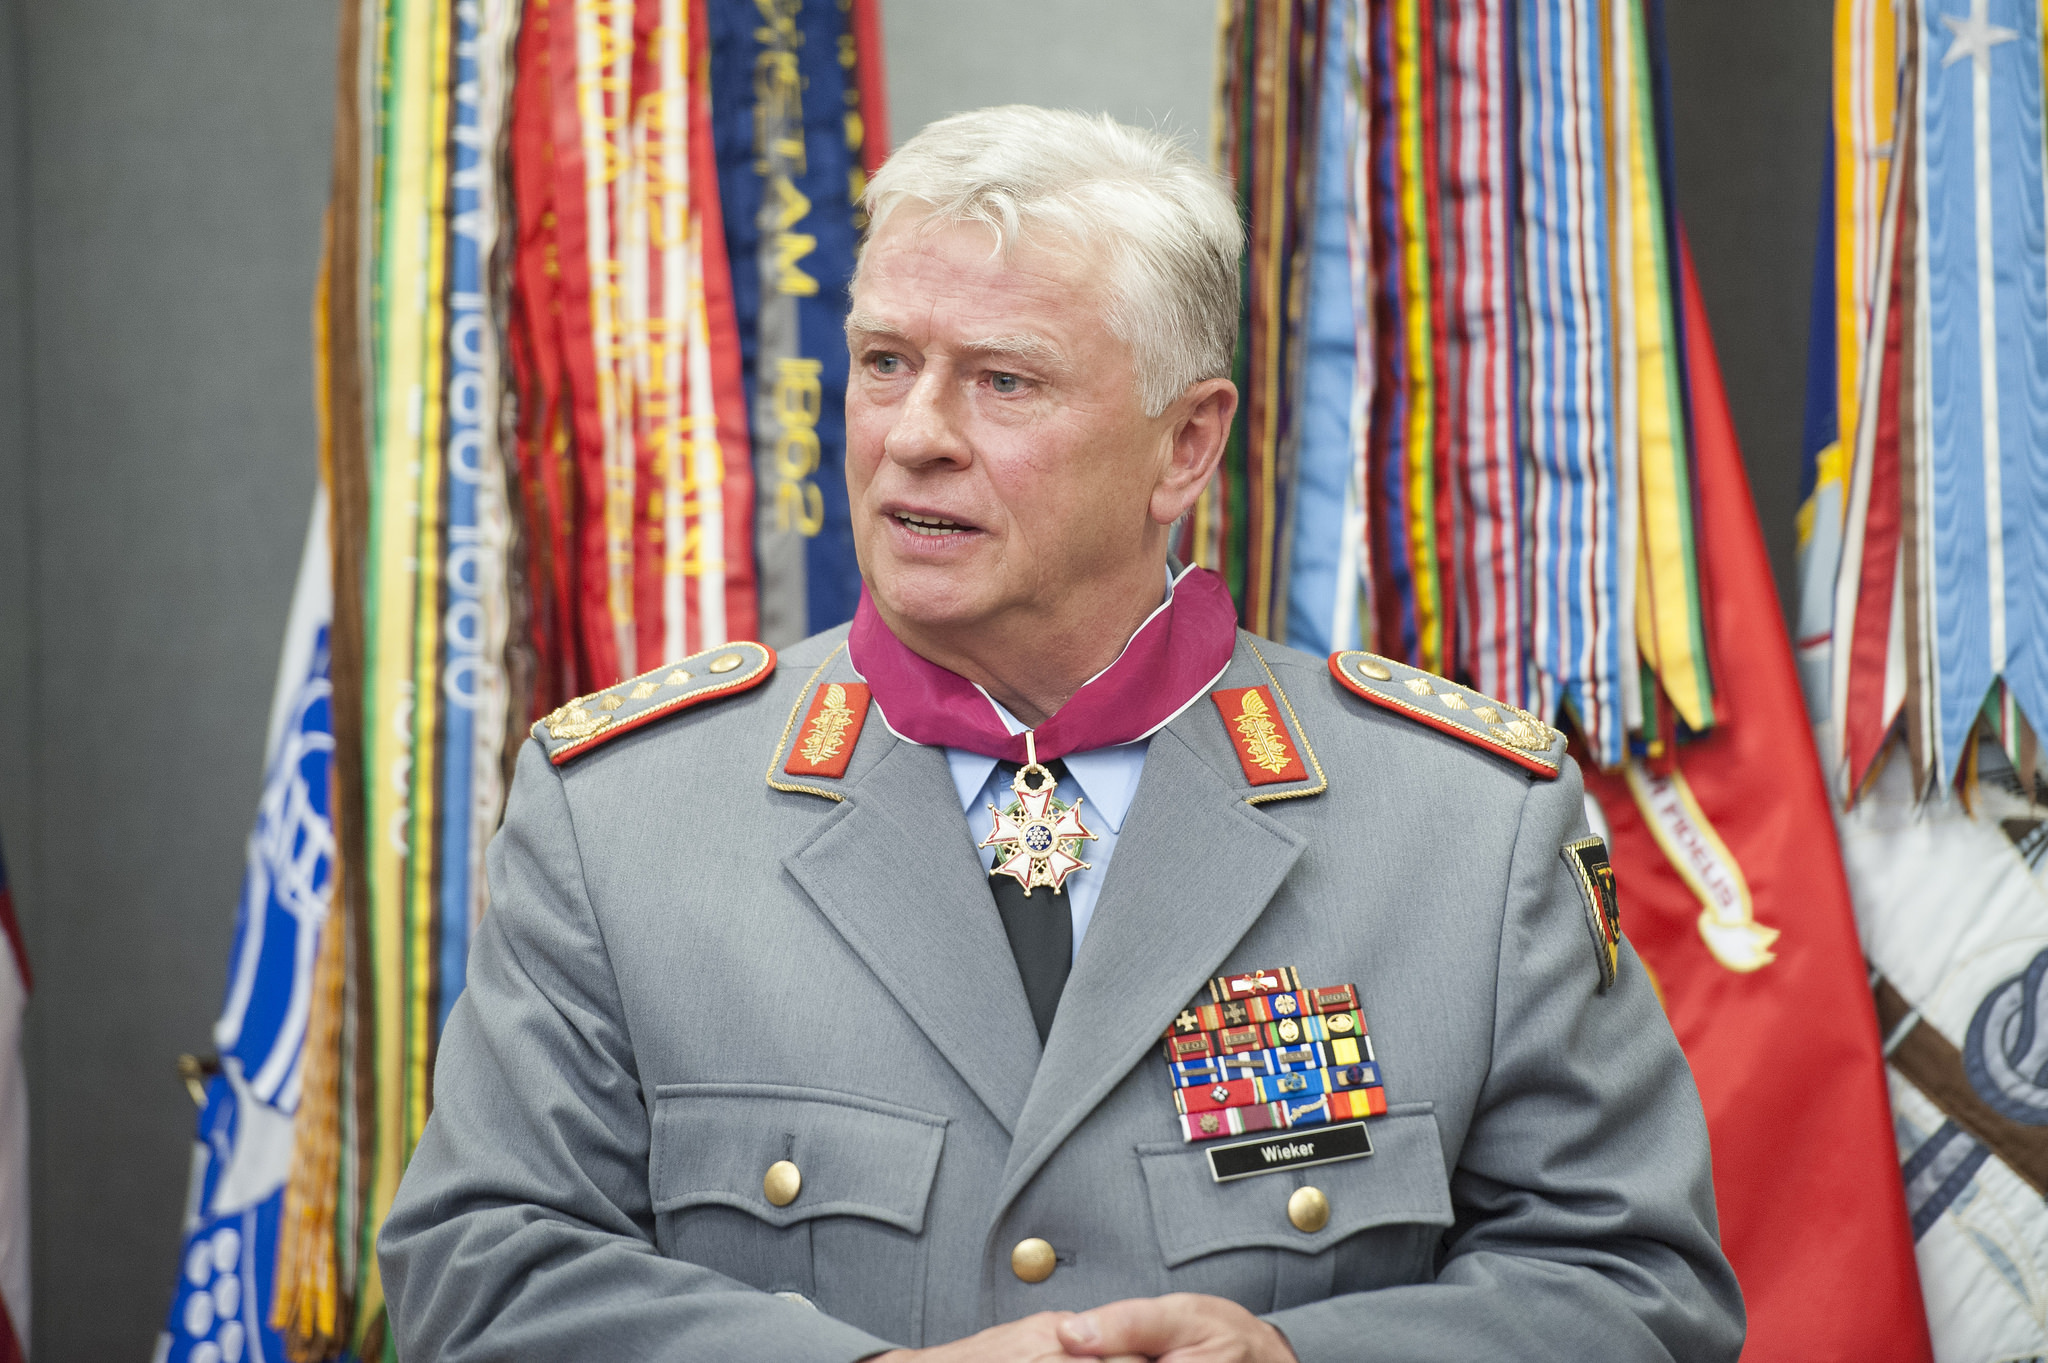 Biography: General Volker Wieker, Chief of Staff – Germany